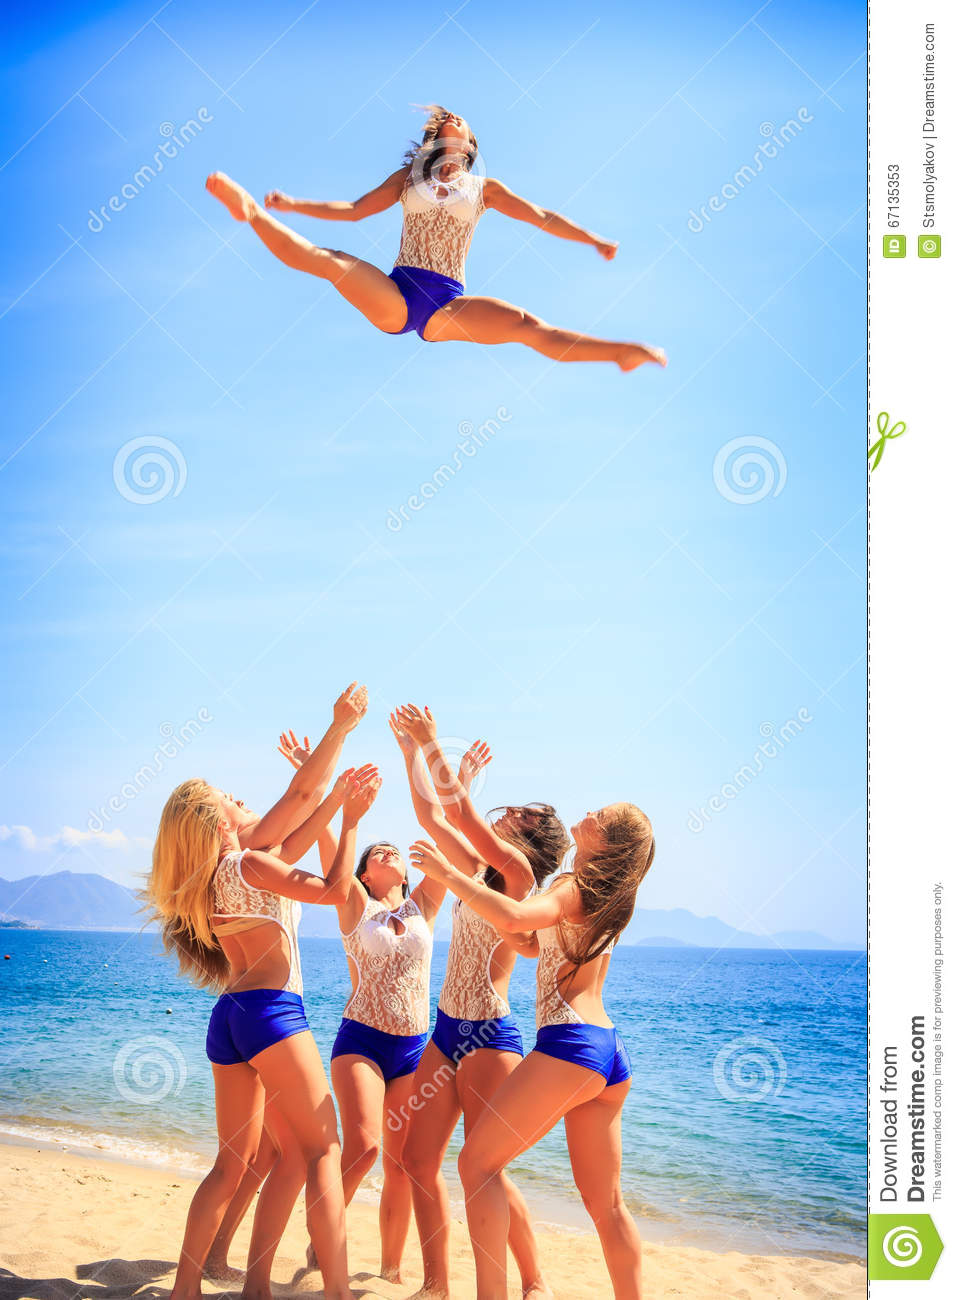 Cheerleading clipart toe touch, Cheerleading toe touch Transparent FREE for  download on WebStockReview 2020